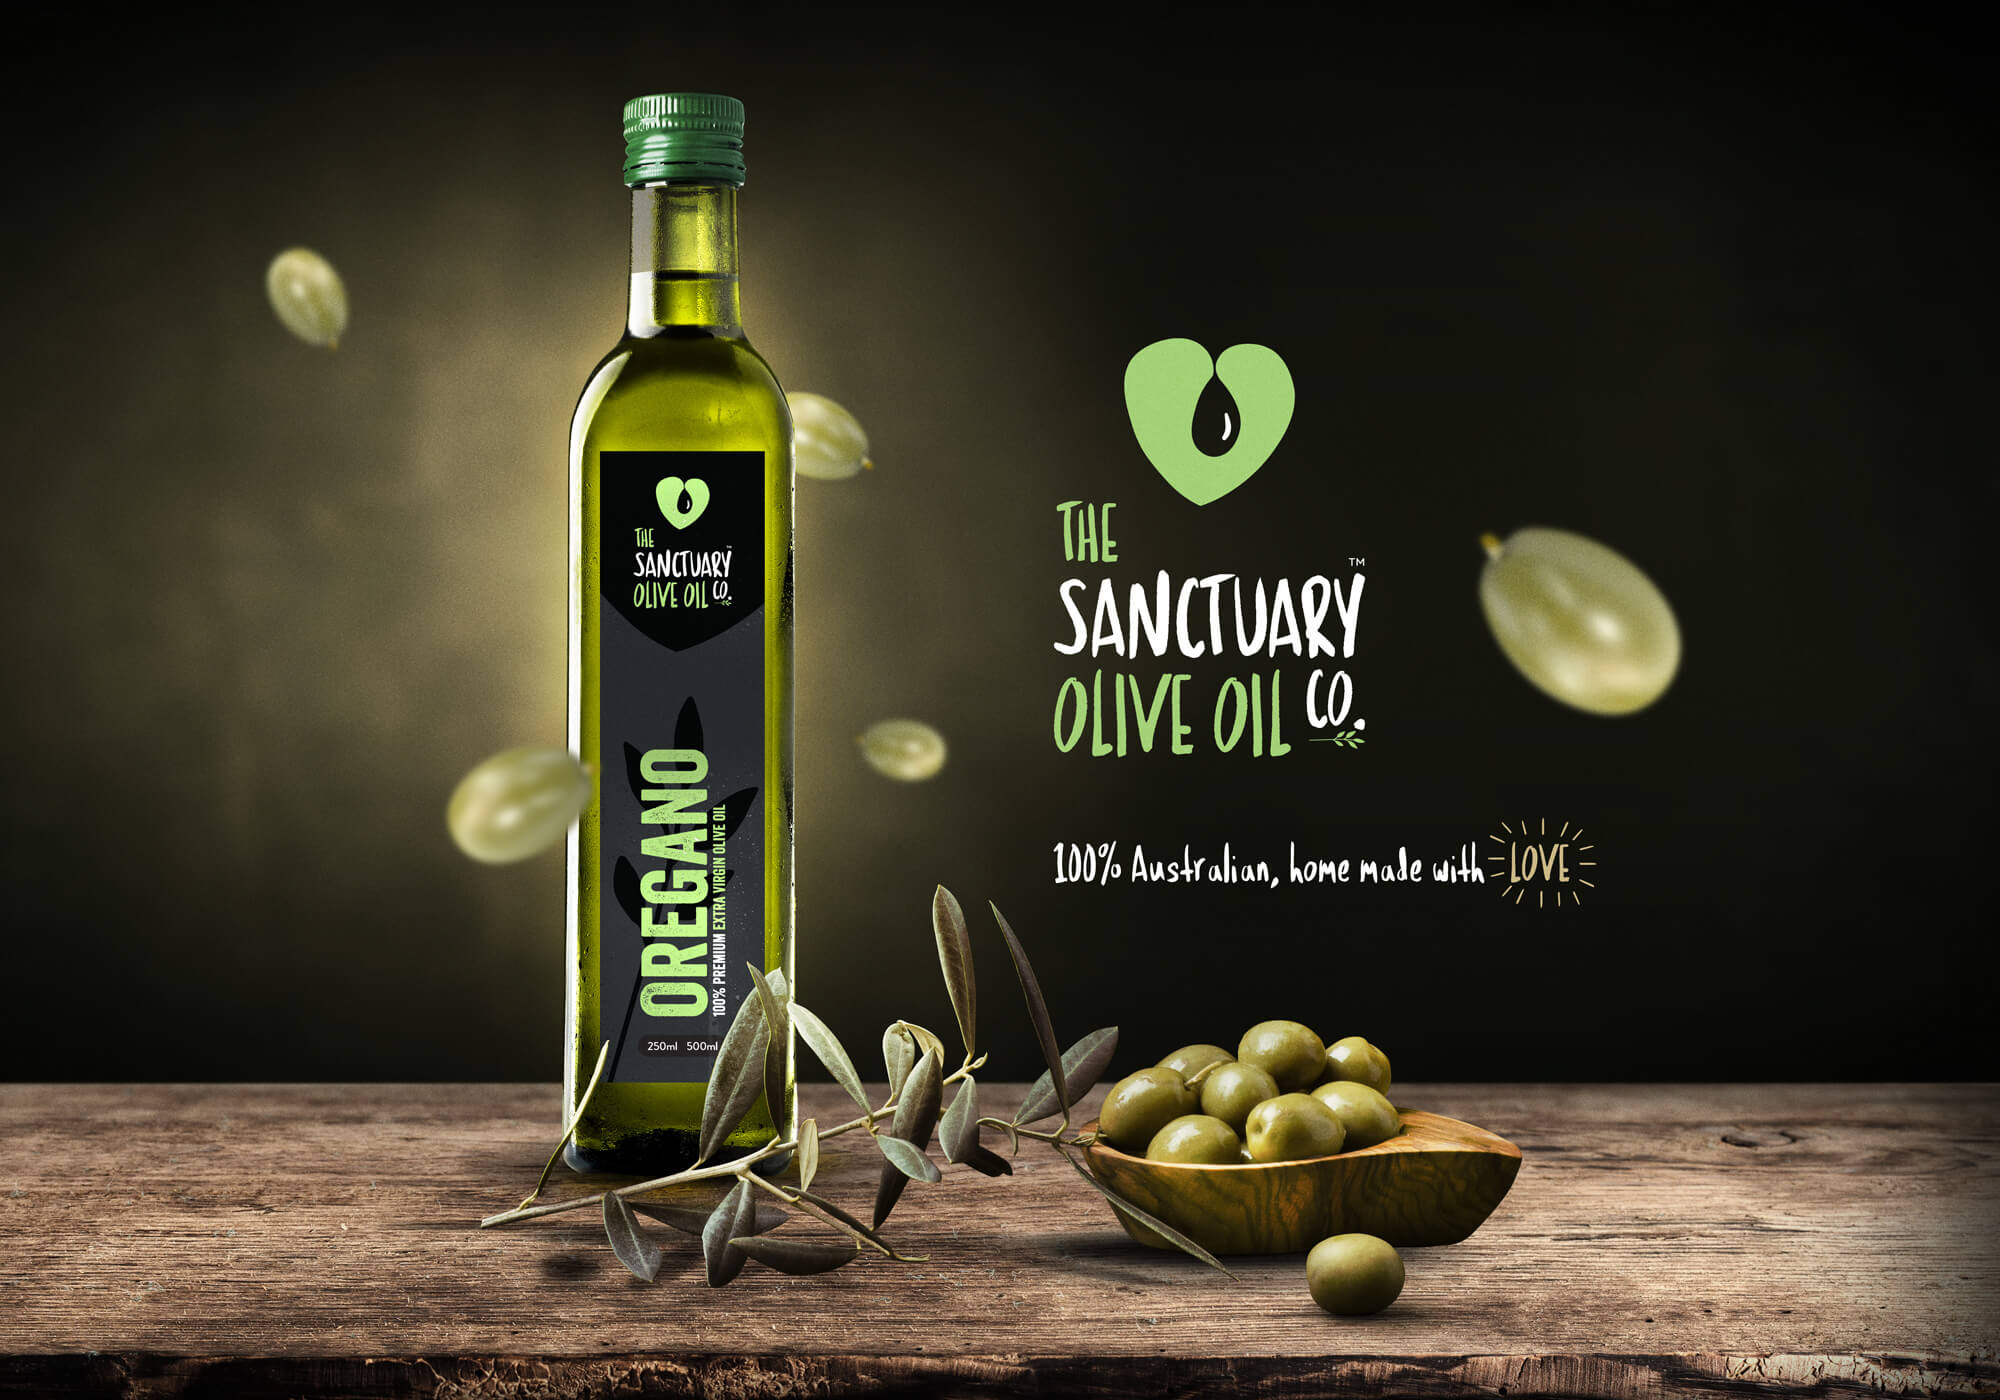 The Sanctuary Olive Oil Co. by KidDotCo